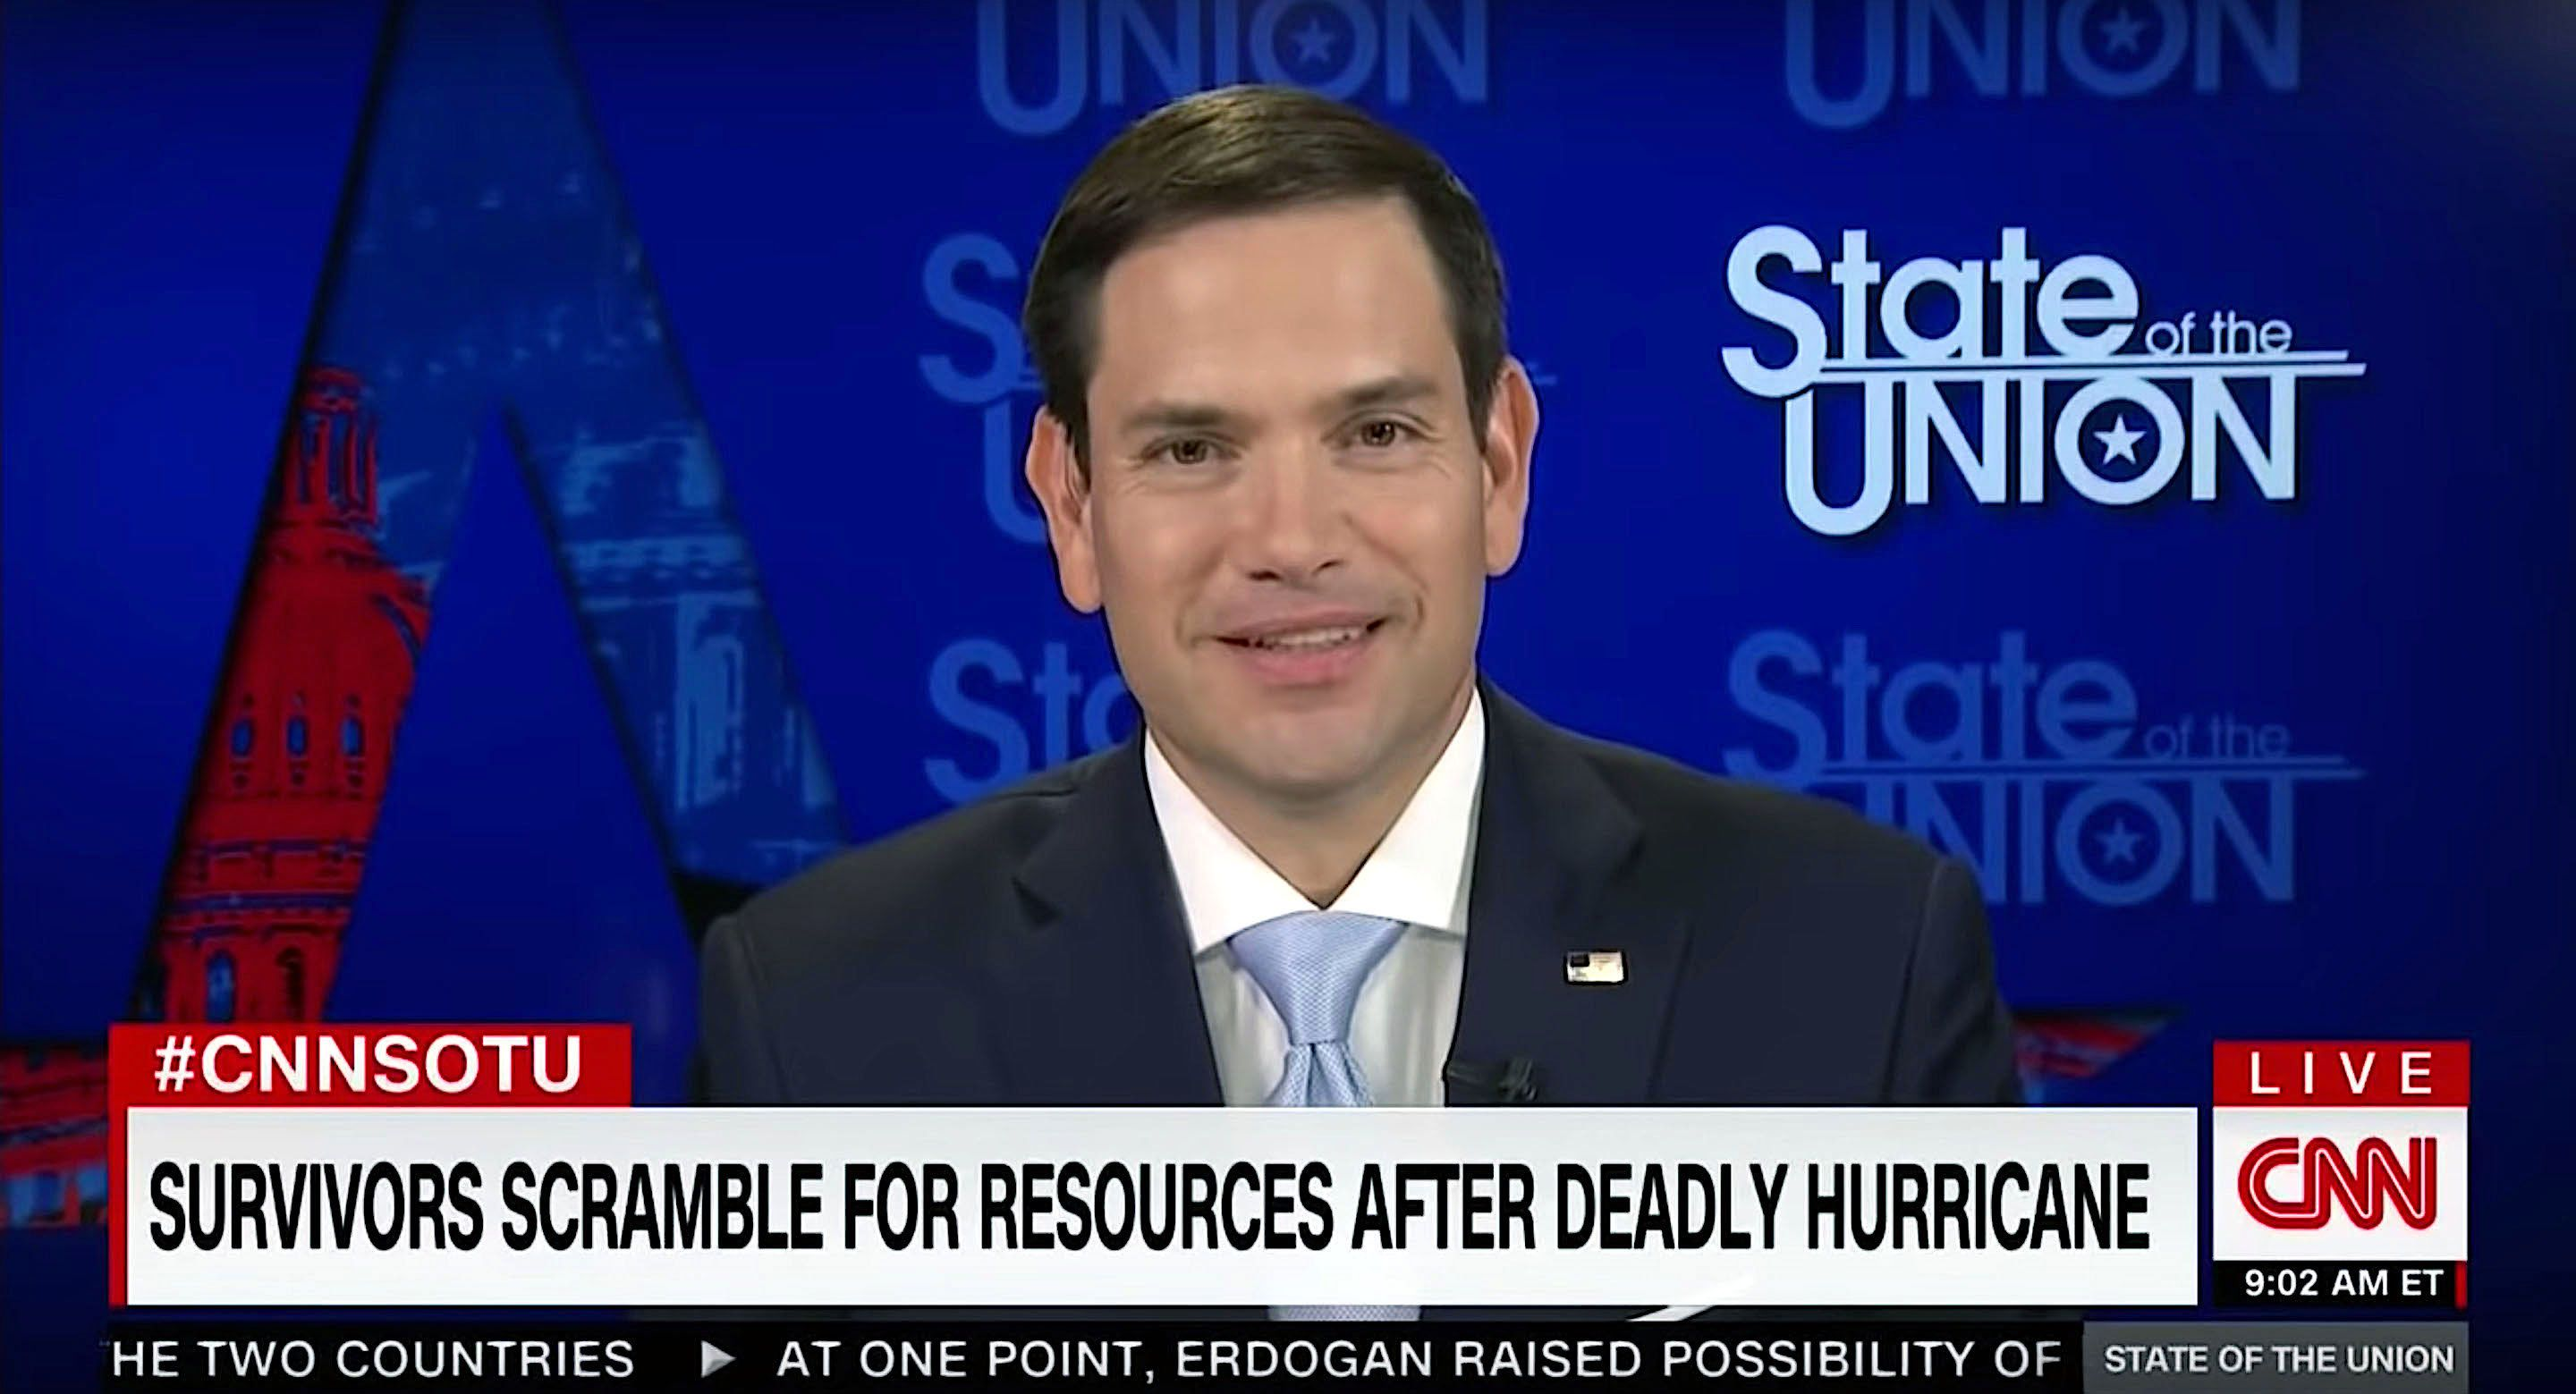 Marco Rubio discusses climate change on CNN.